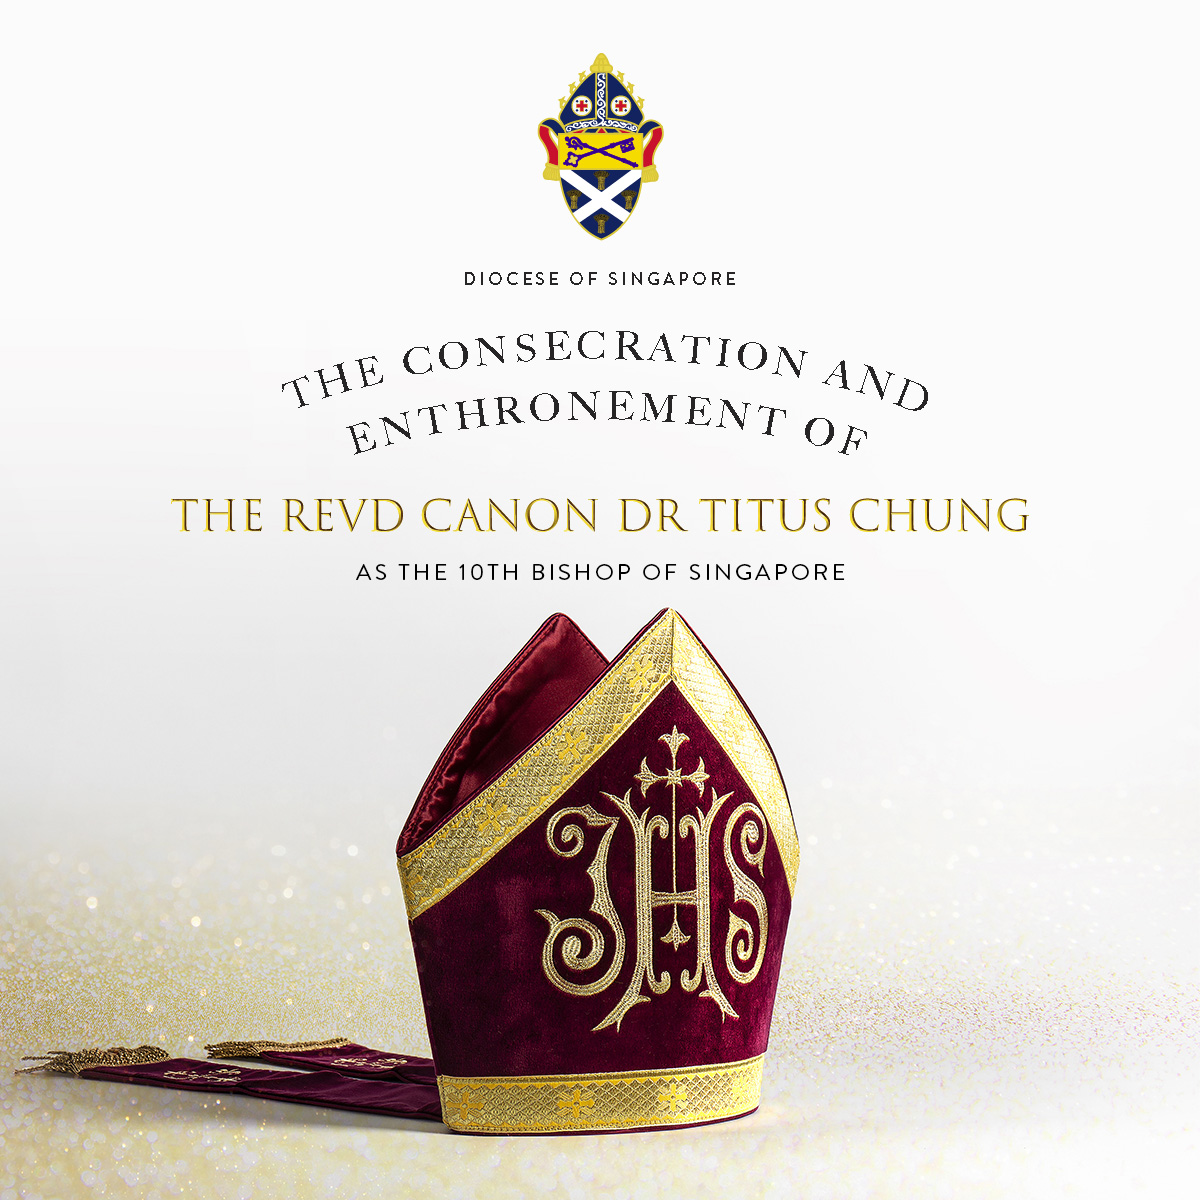 The Consecration and Enthronement of The Revd Canon Dr Titus Chung